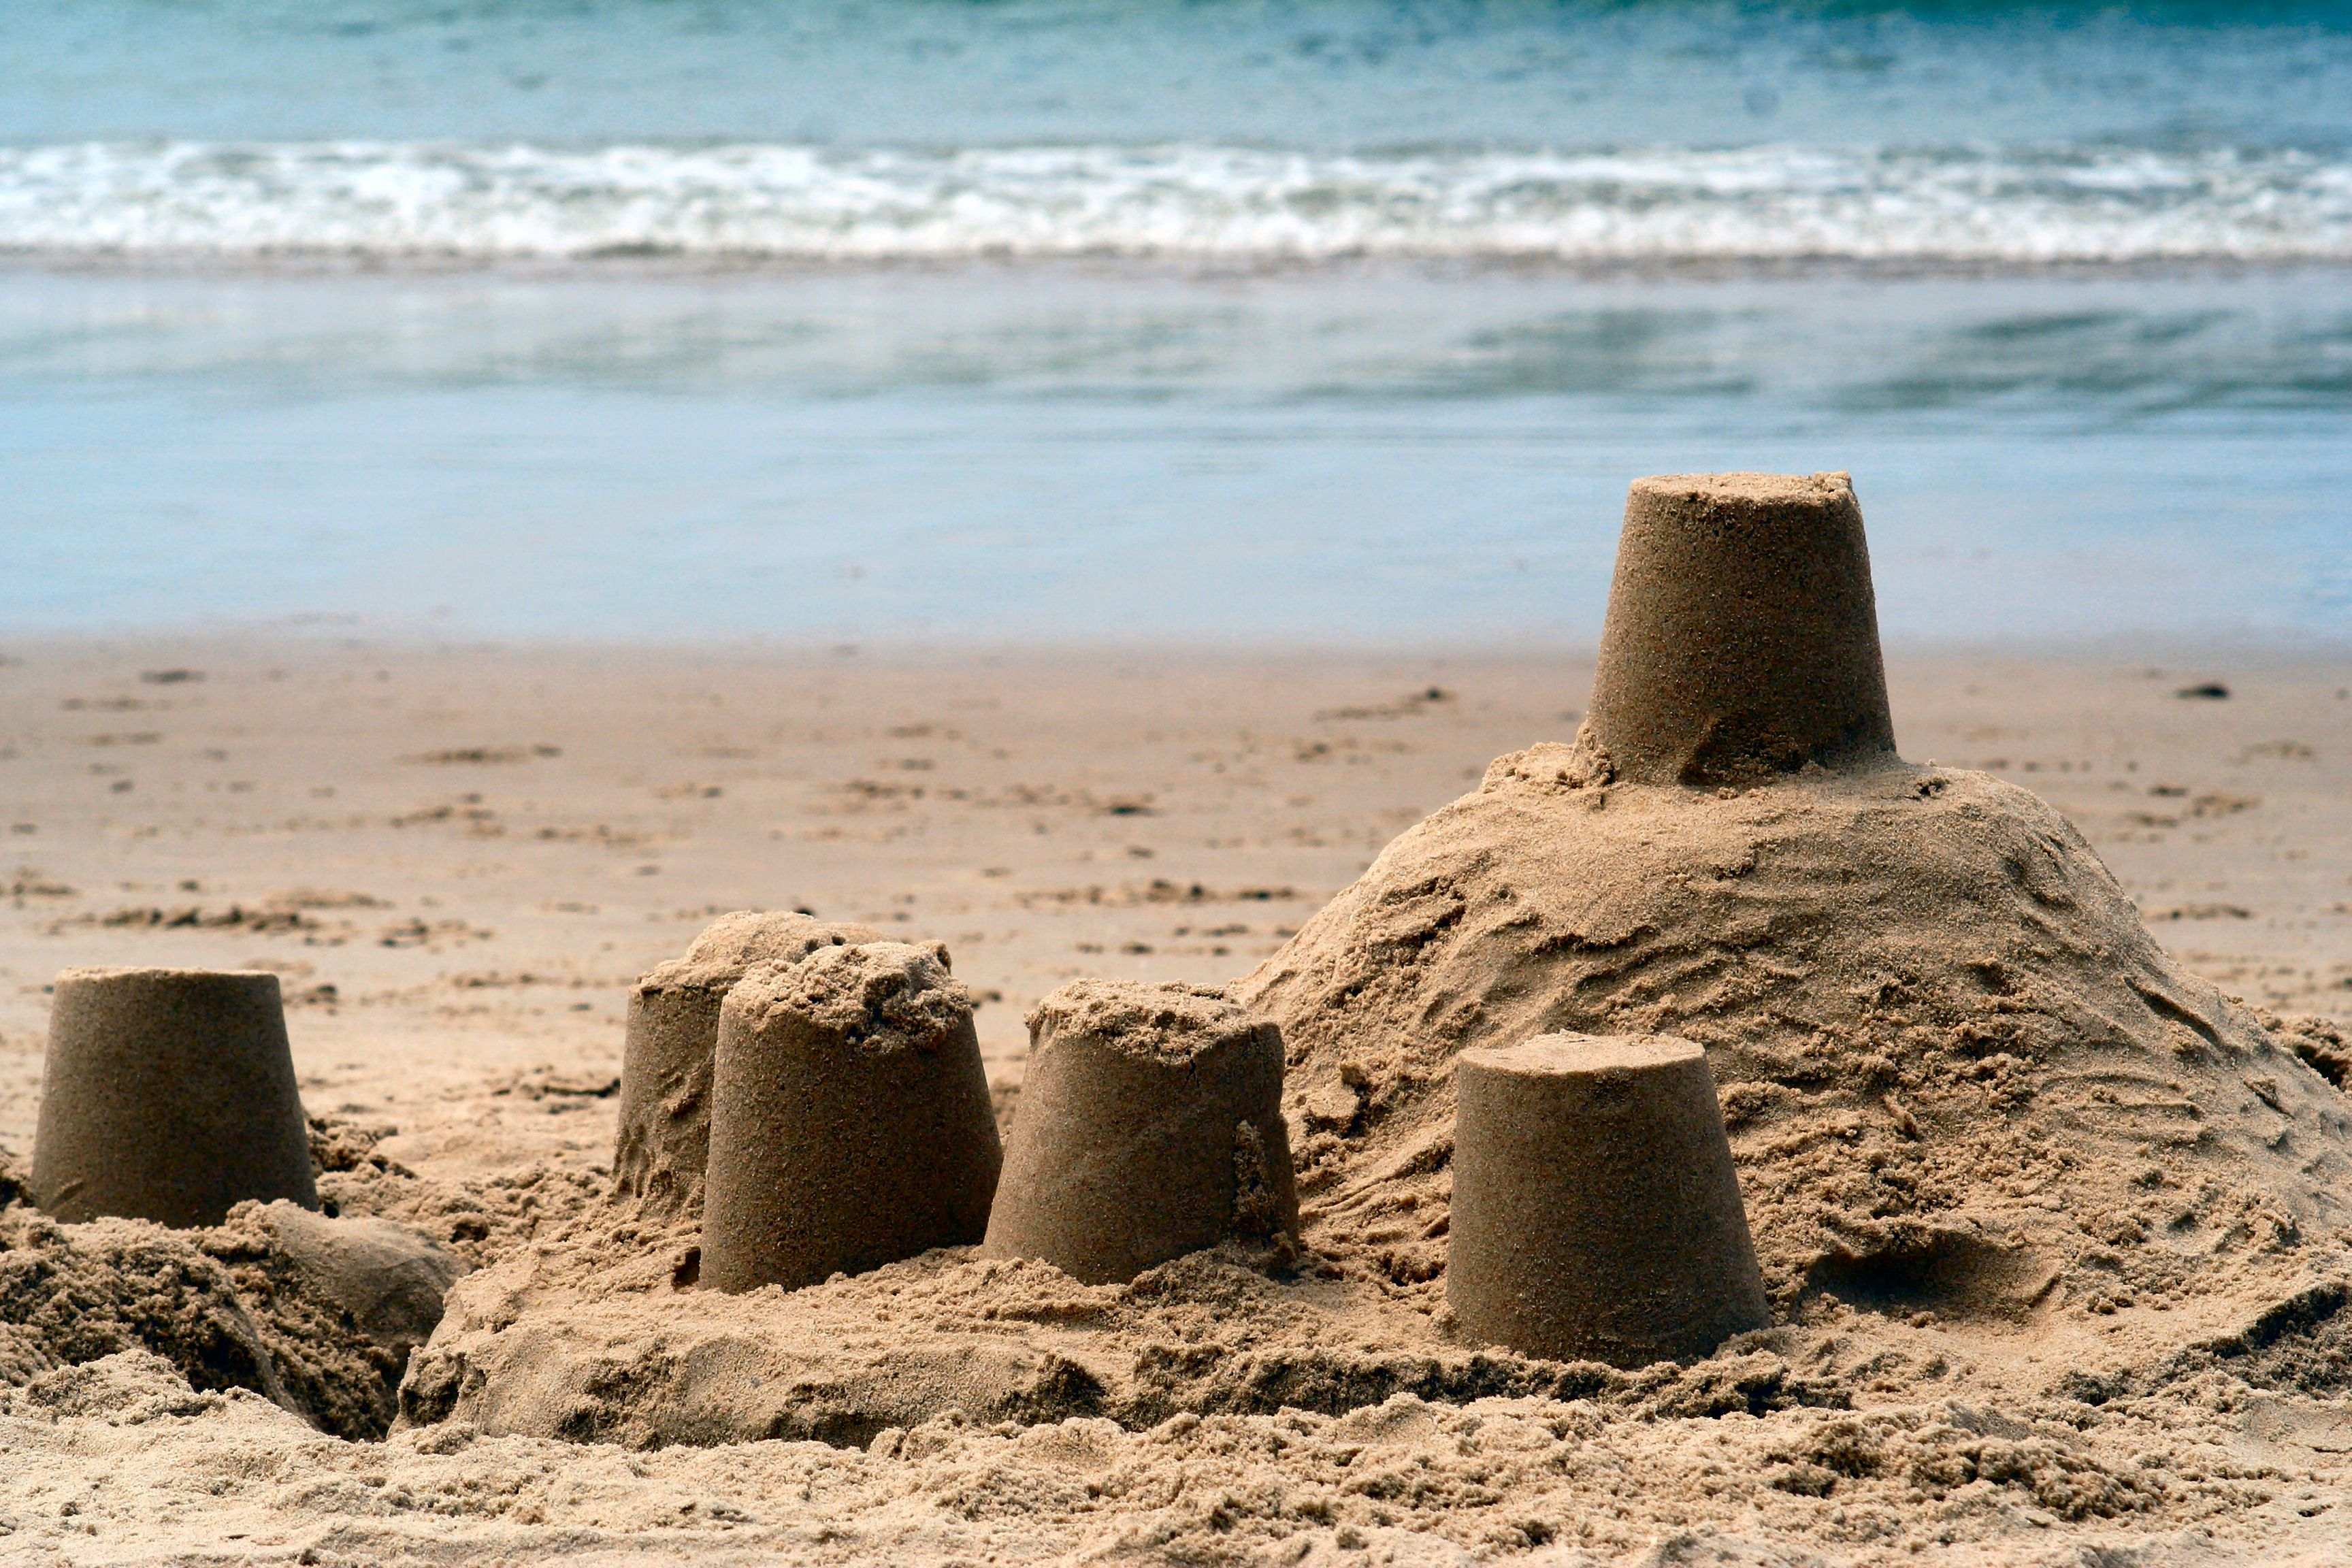 When you mix sand and water to build a sandcastle, you are making a type of homemade quicksand.